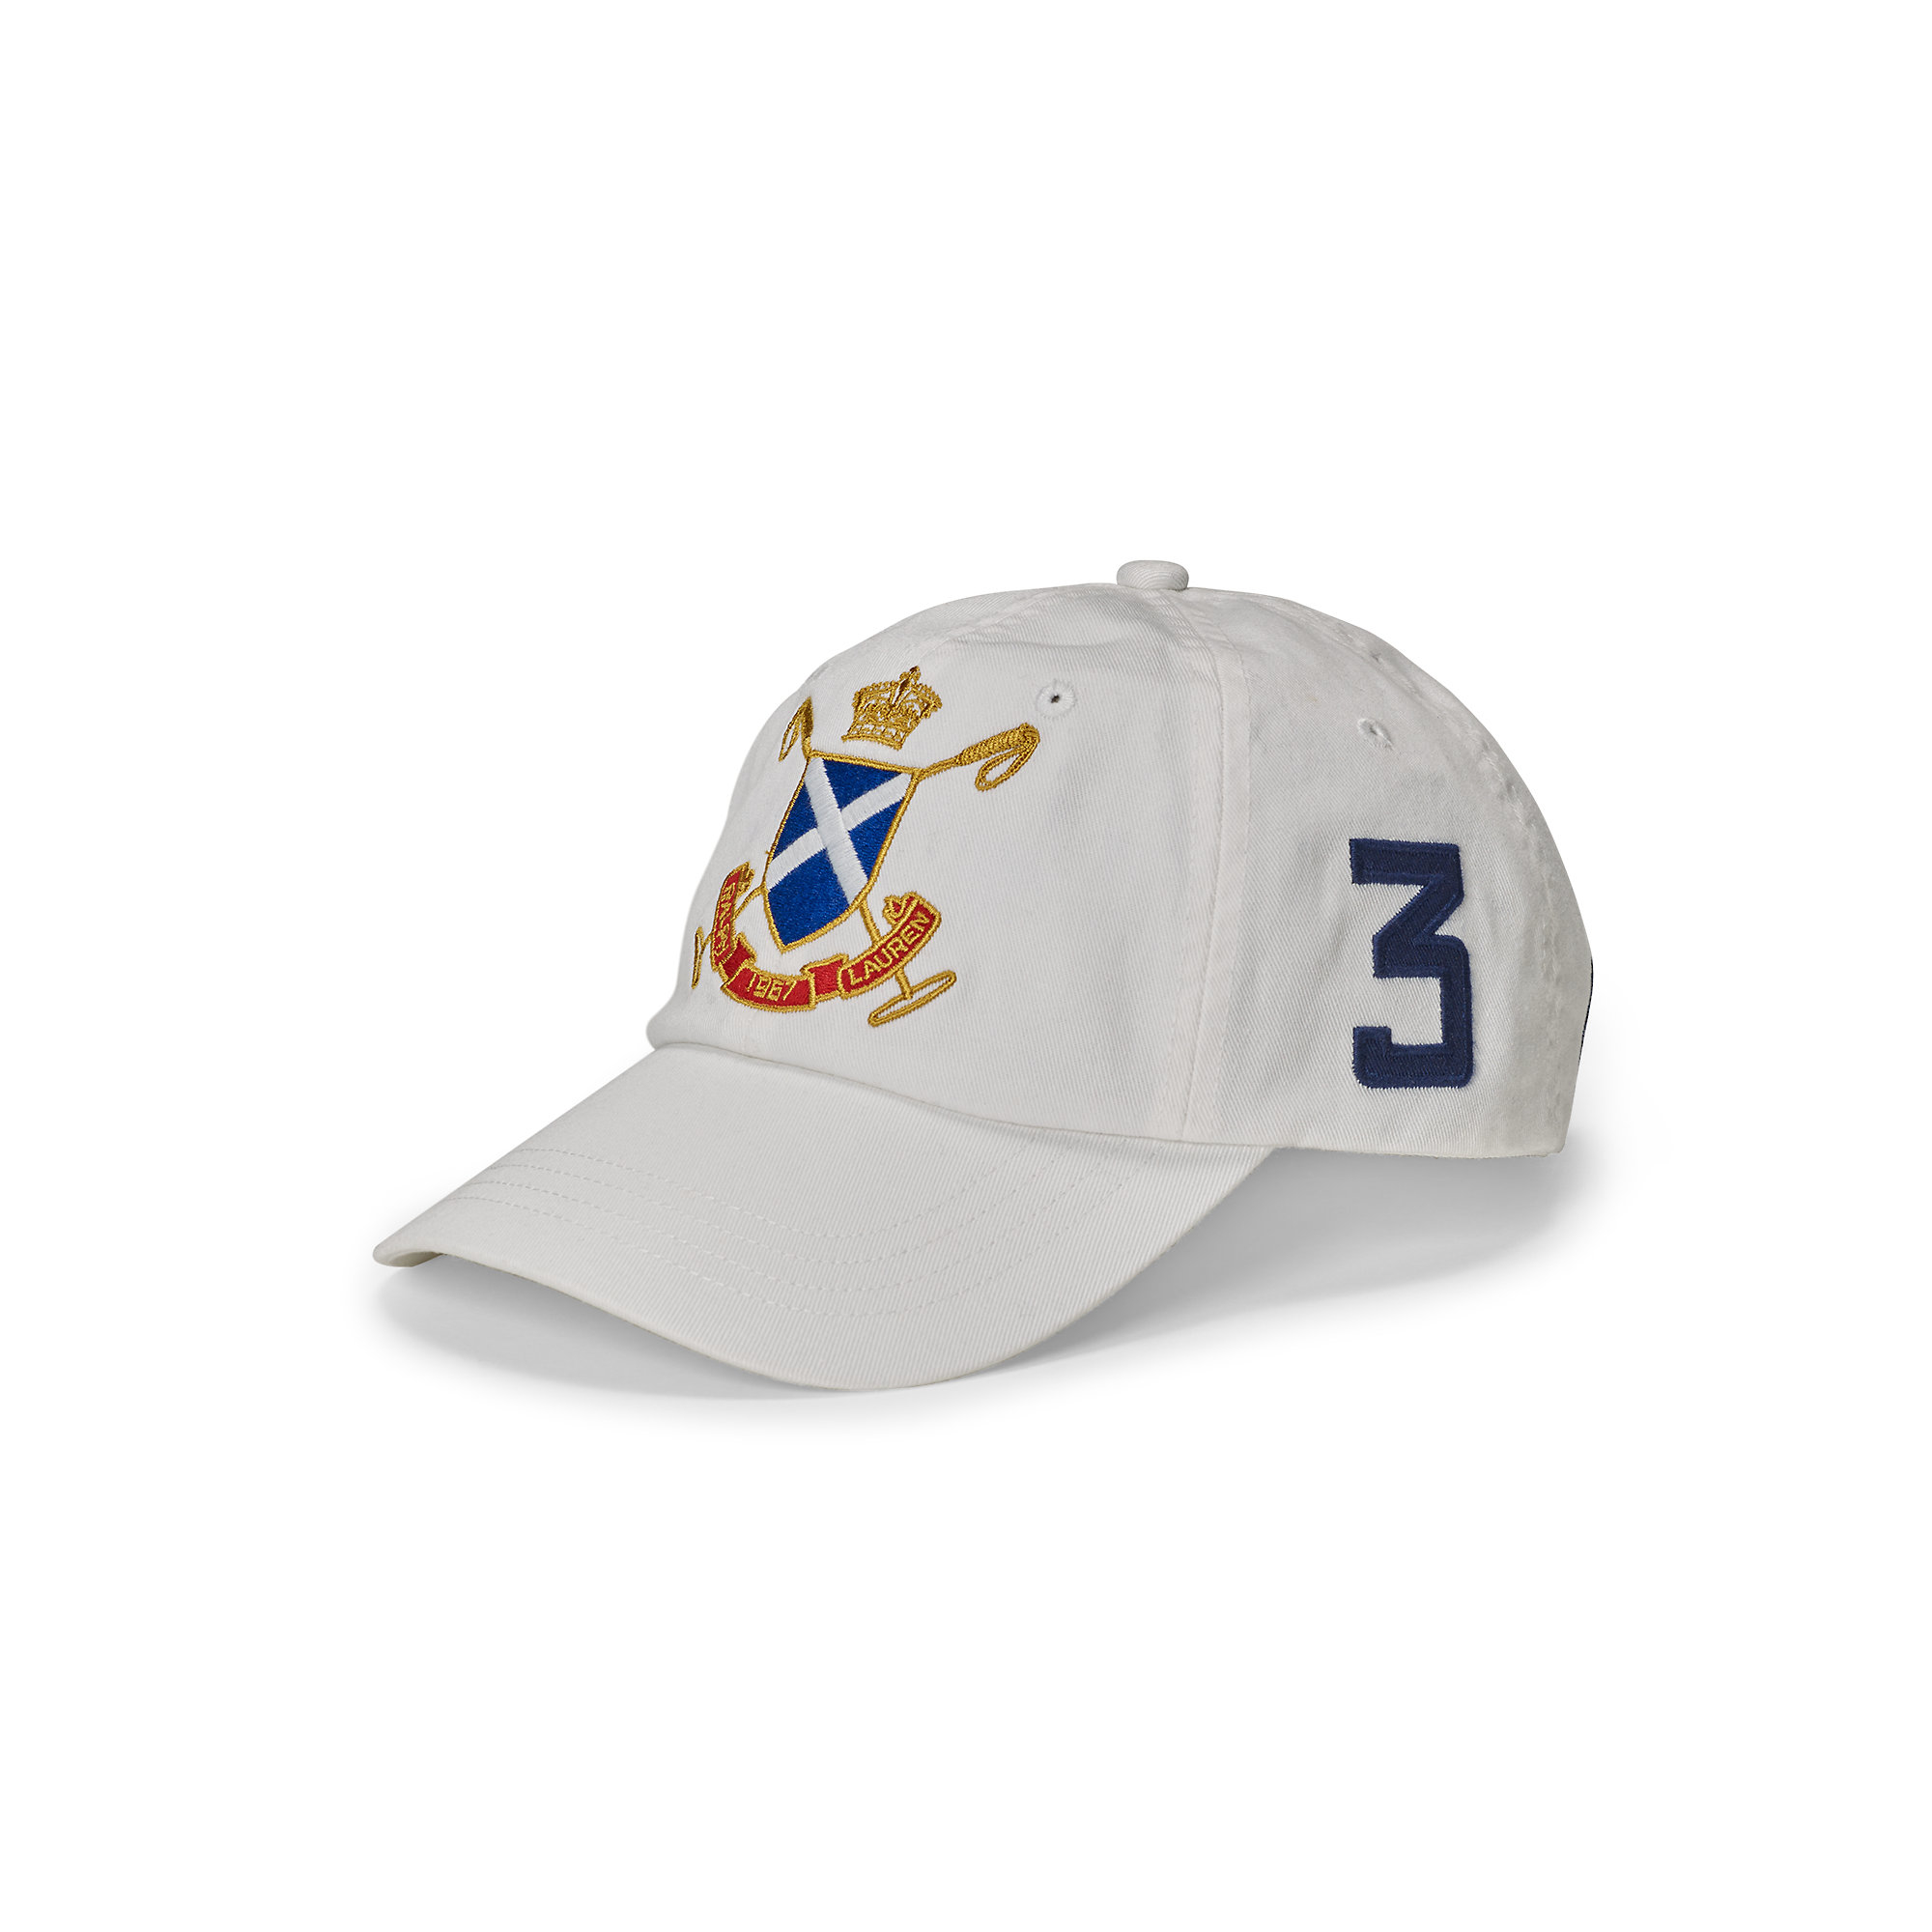 Lyst - Polo Ralph Lauren Blackwatch Cotton Baseball Cap in White for Men 7fbcd83ff99